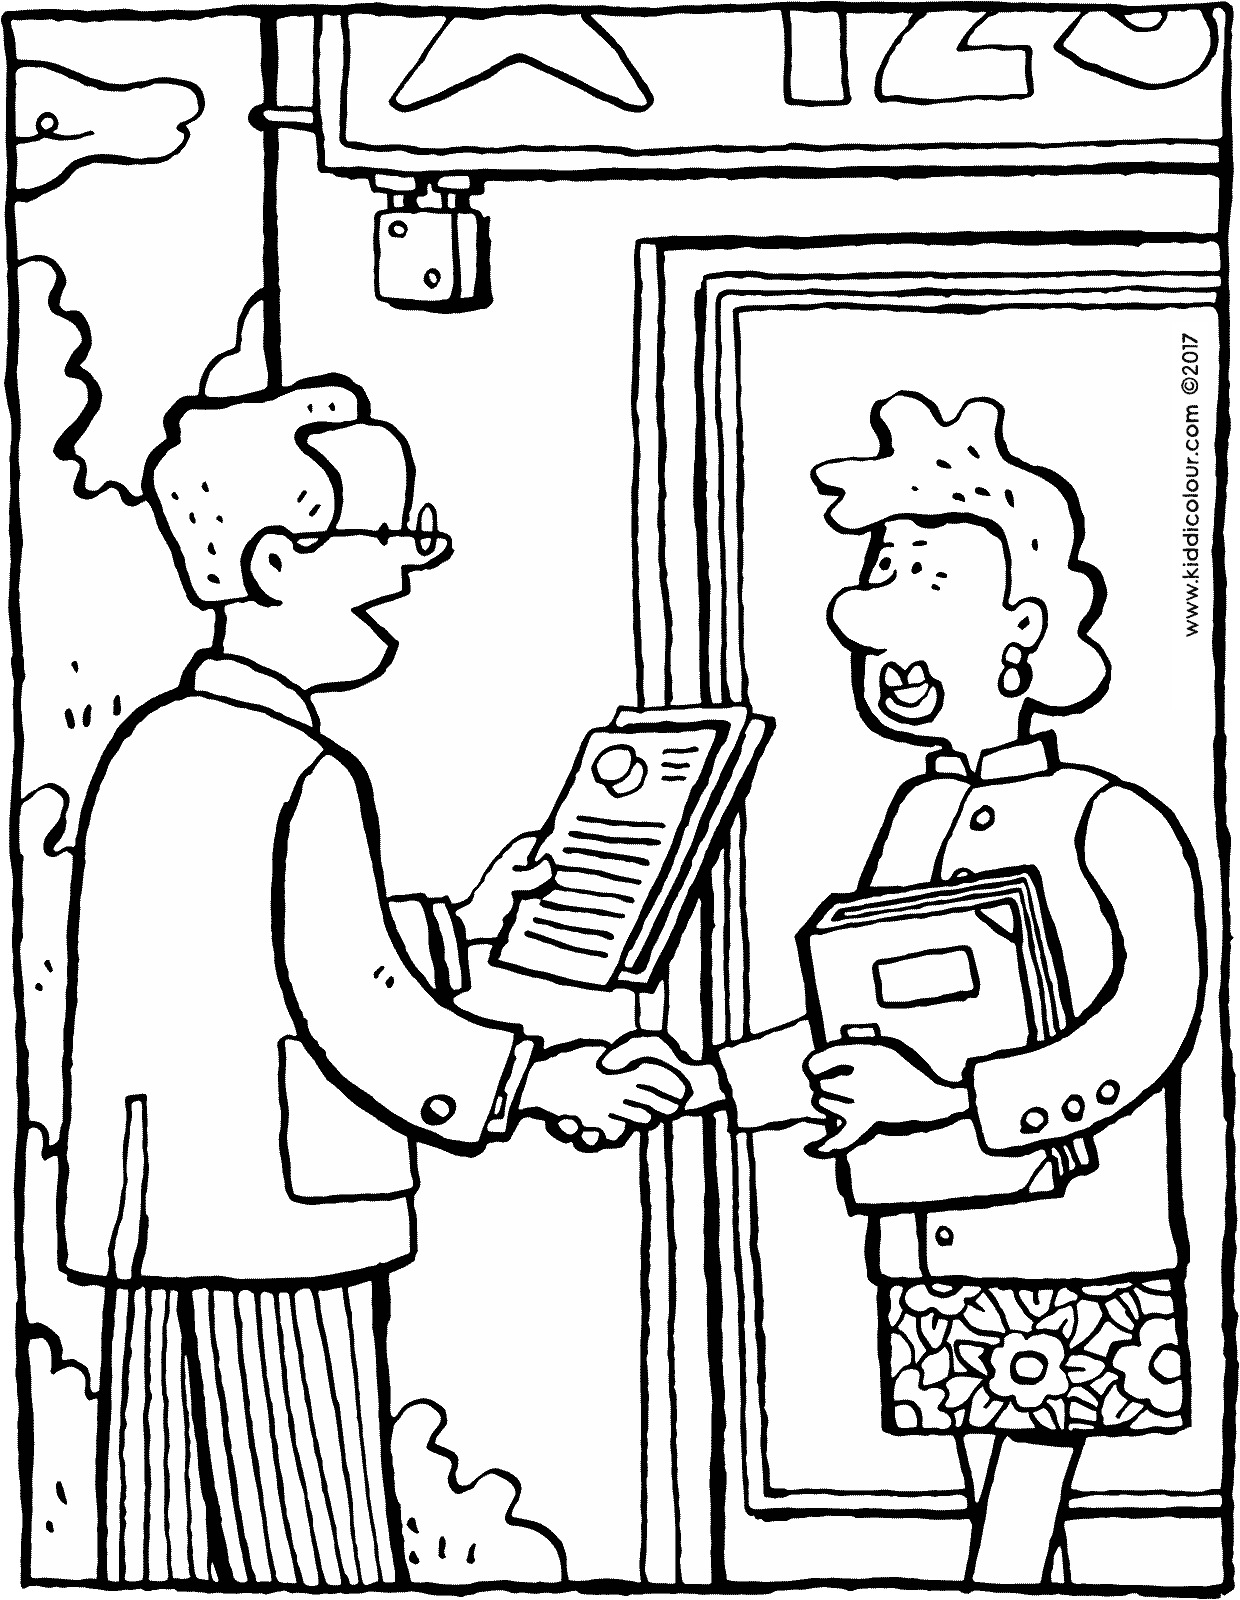 a strong handshake colouring page drawing picture 01V